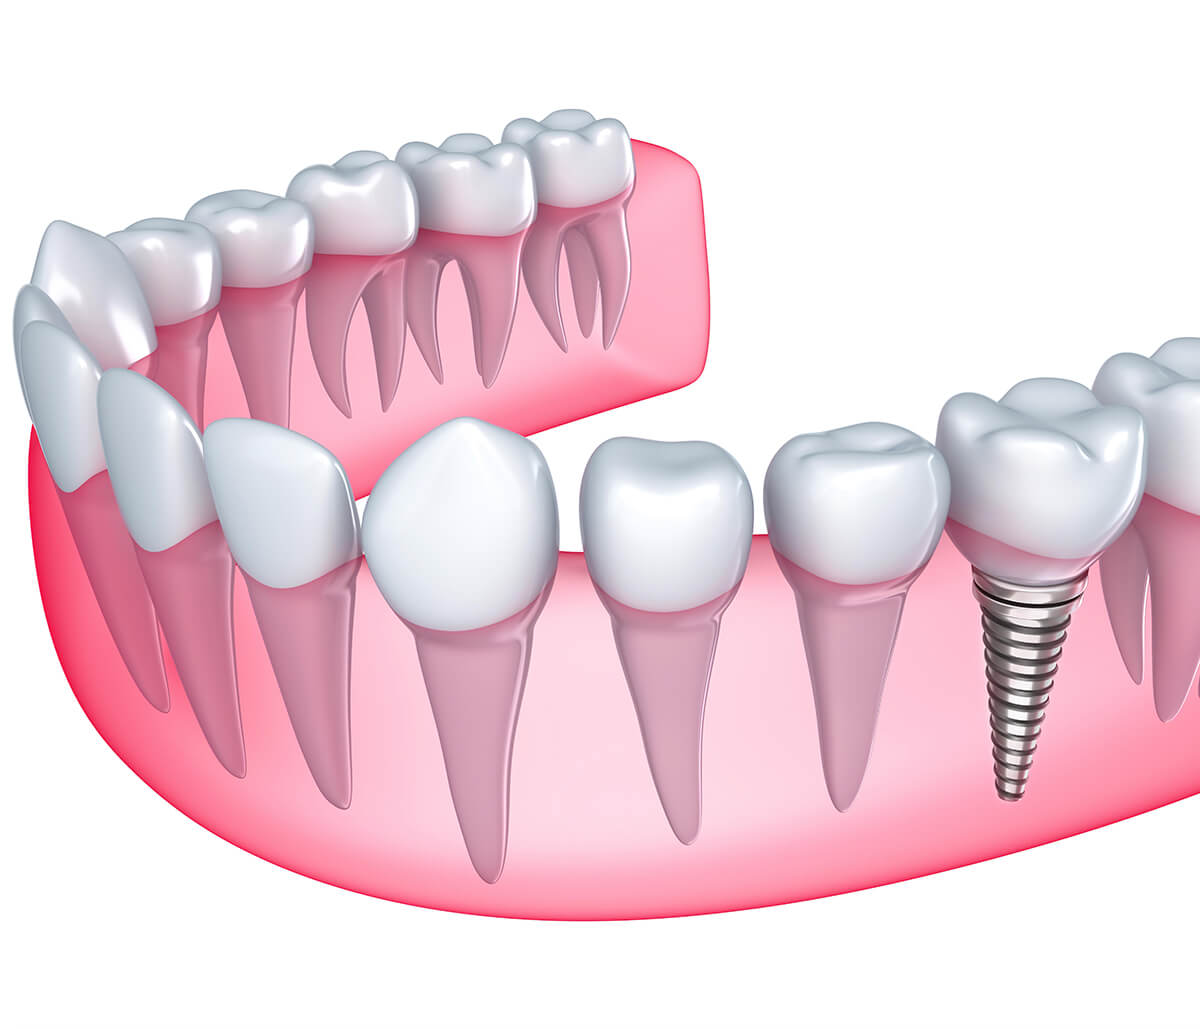 Steps to Replace a Tooth, a Mouthful of Teeth with the Dental Implant Procedure in Fort Worth, TX Area